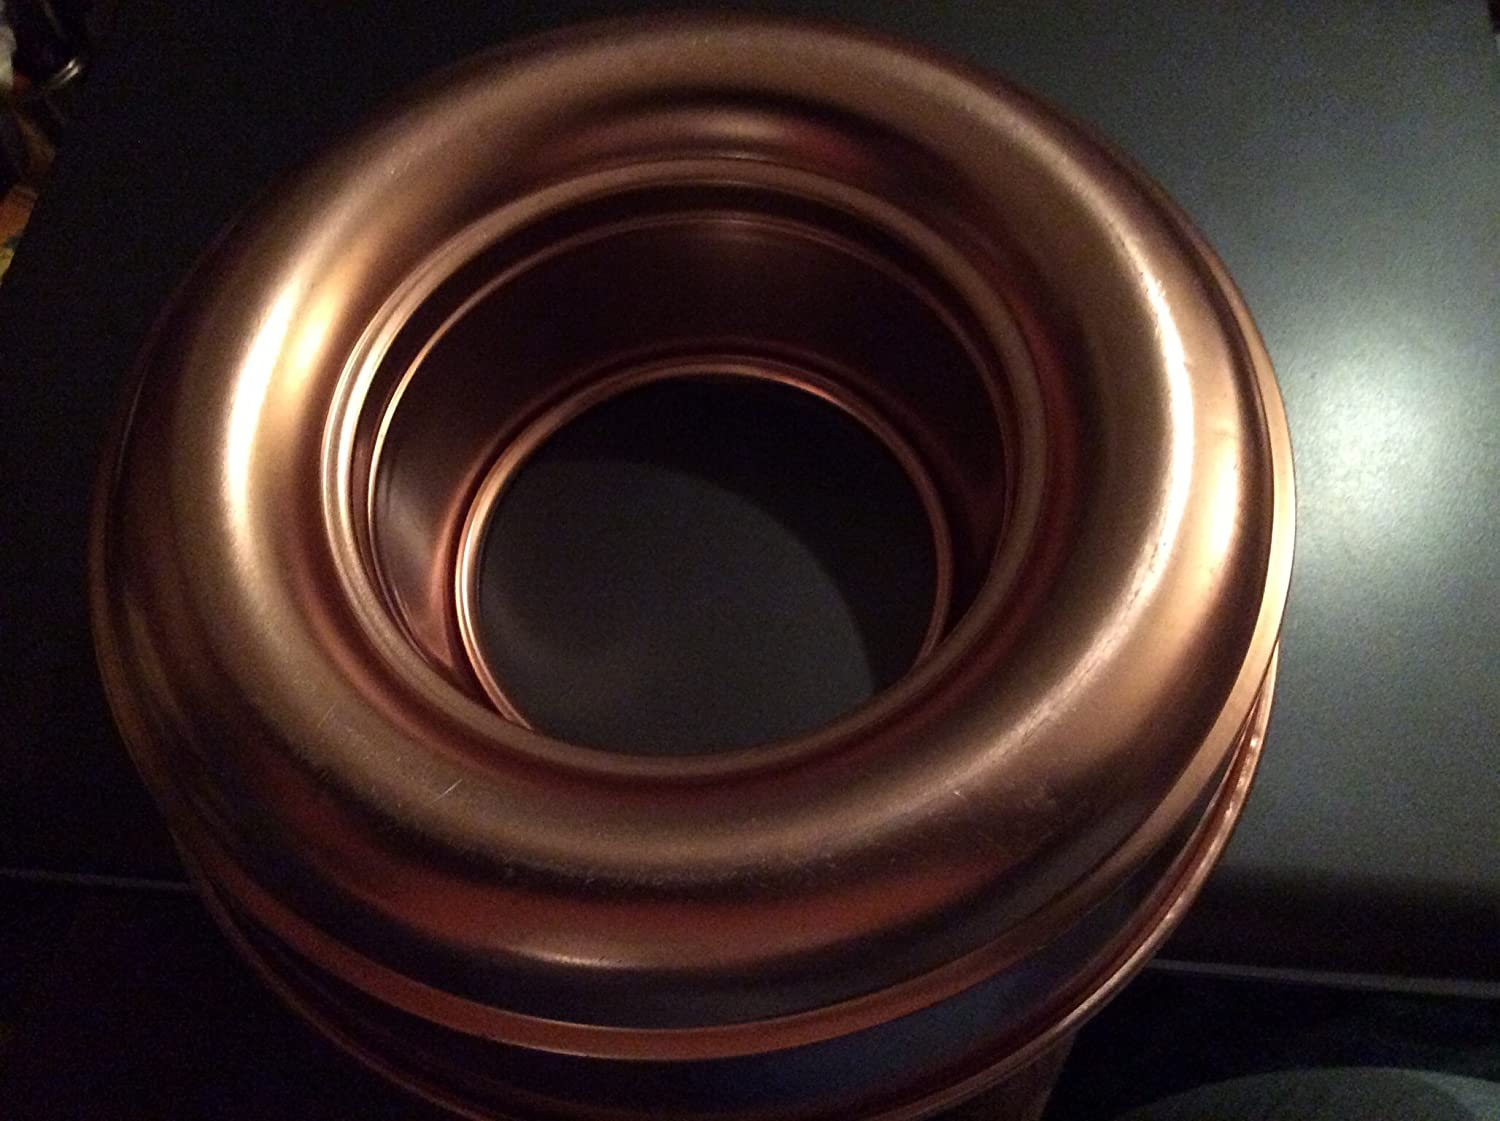 Vintage Coppertone Copper Tone 10 x 2 1/2 Inch Ring Jell-O Mold / Cake Baking Pan unknown